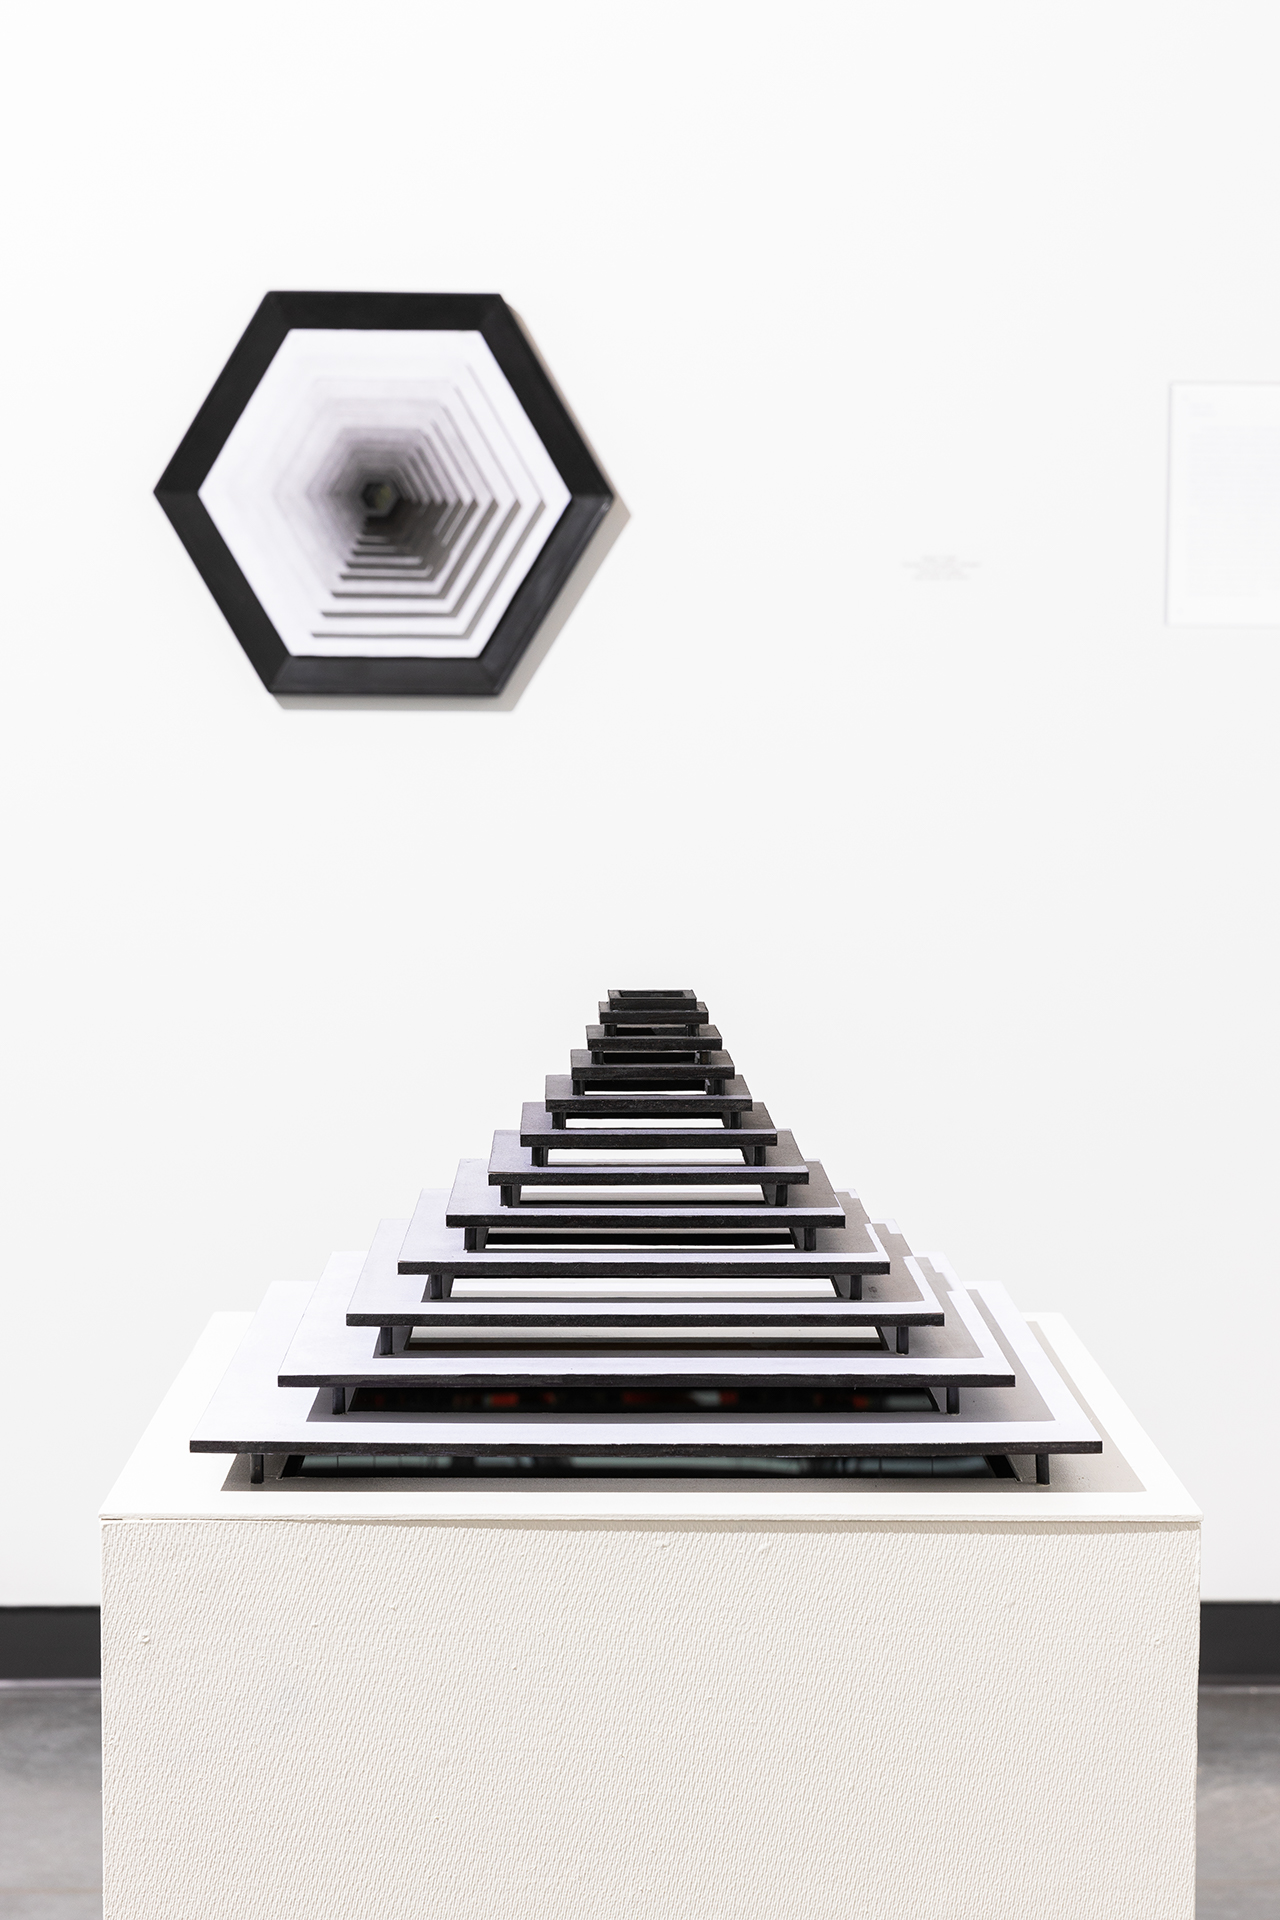 Paradox of Perception; Hexagon and Cube installation.